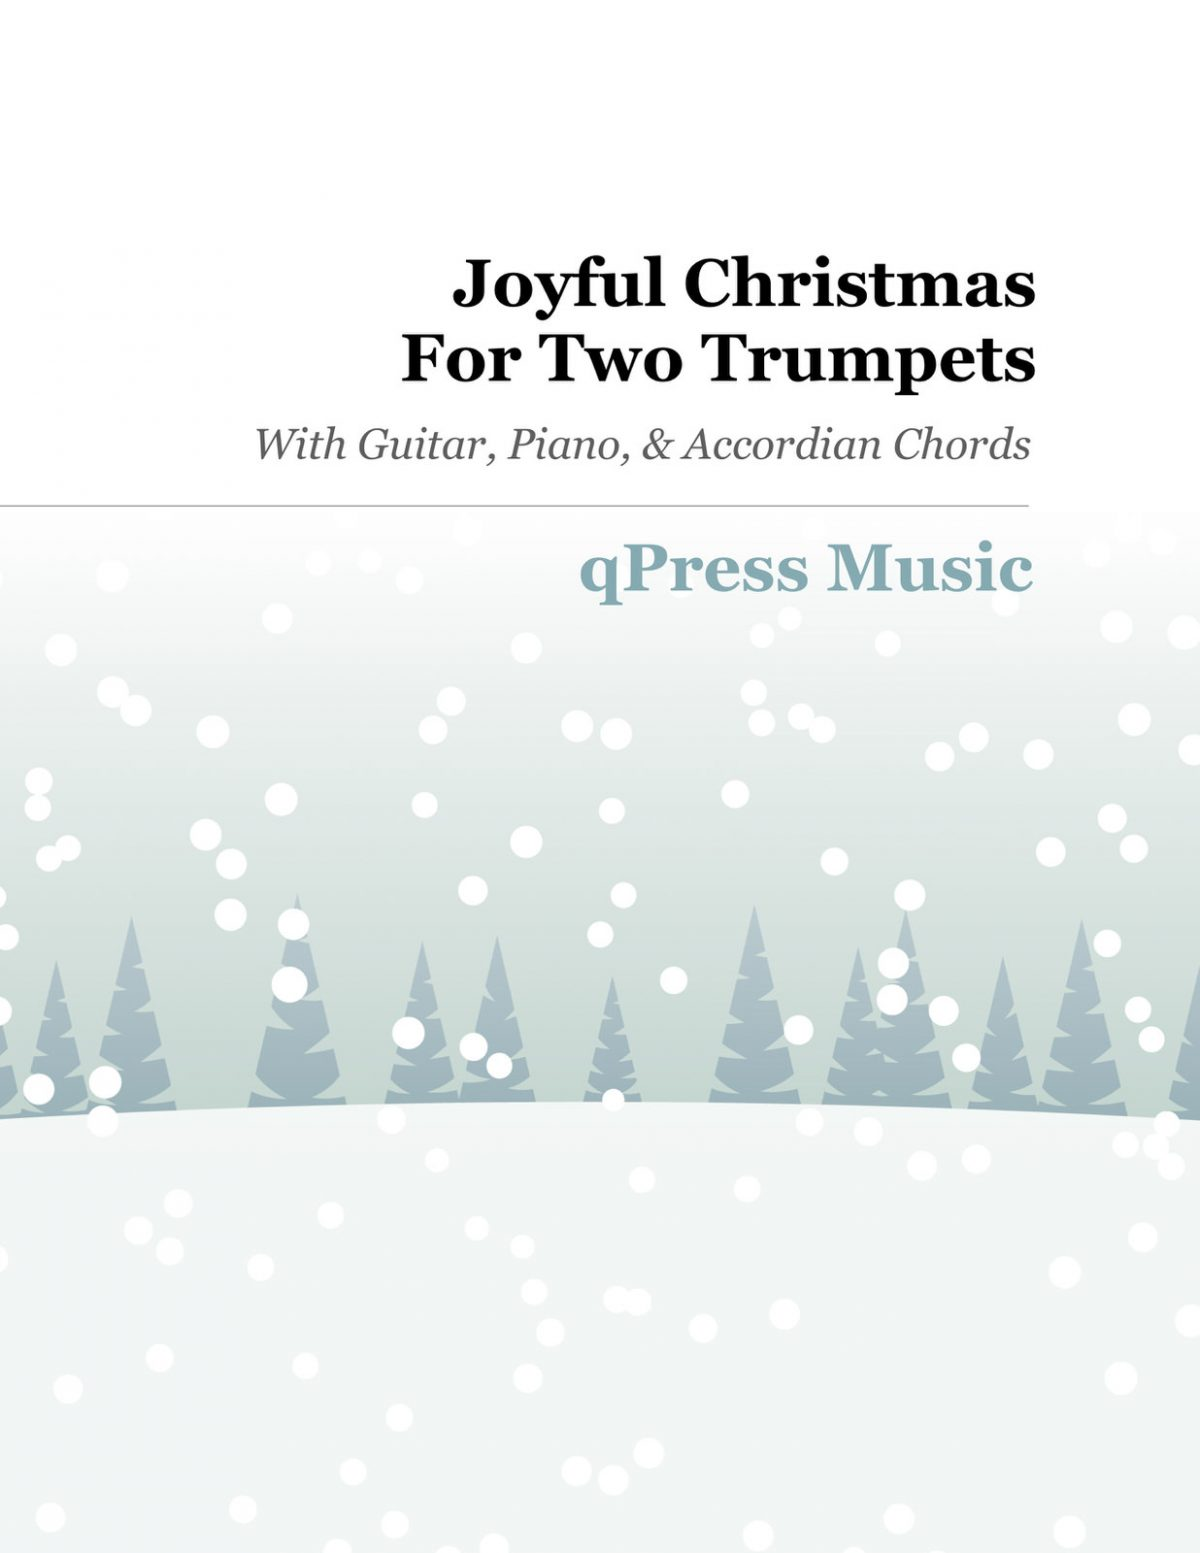 Joyful Christmas for Two Trumpets